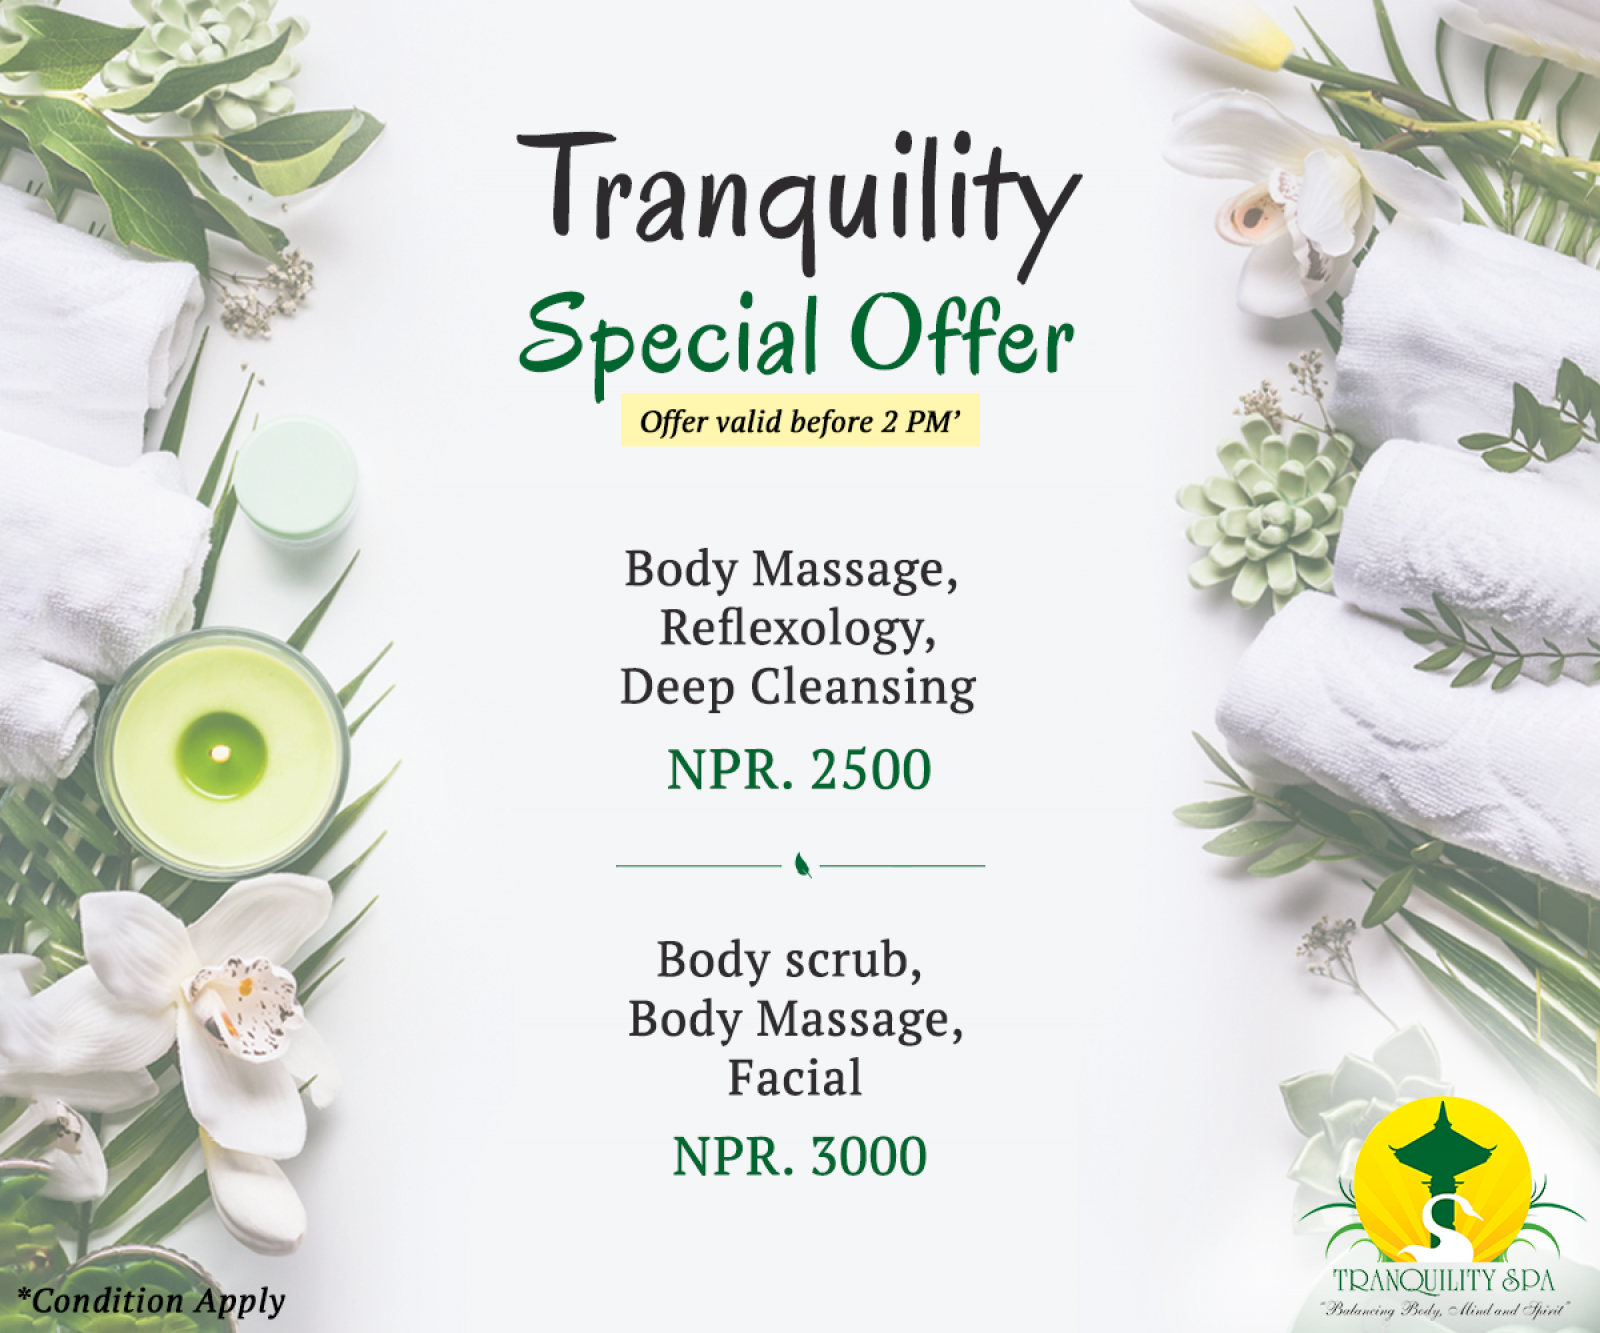 Tranquility Special Offer